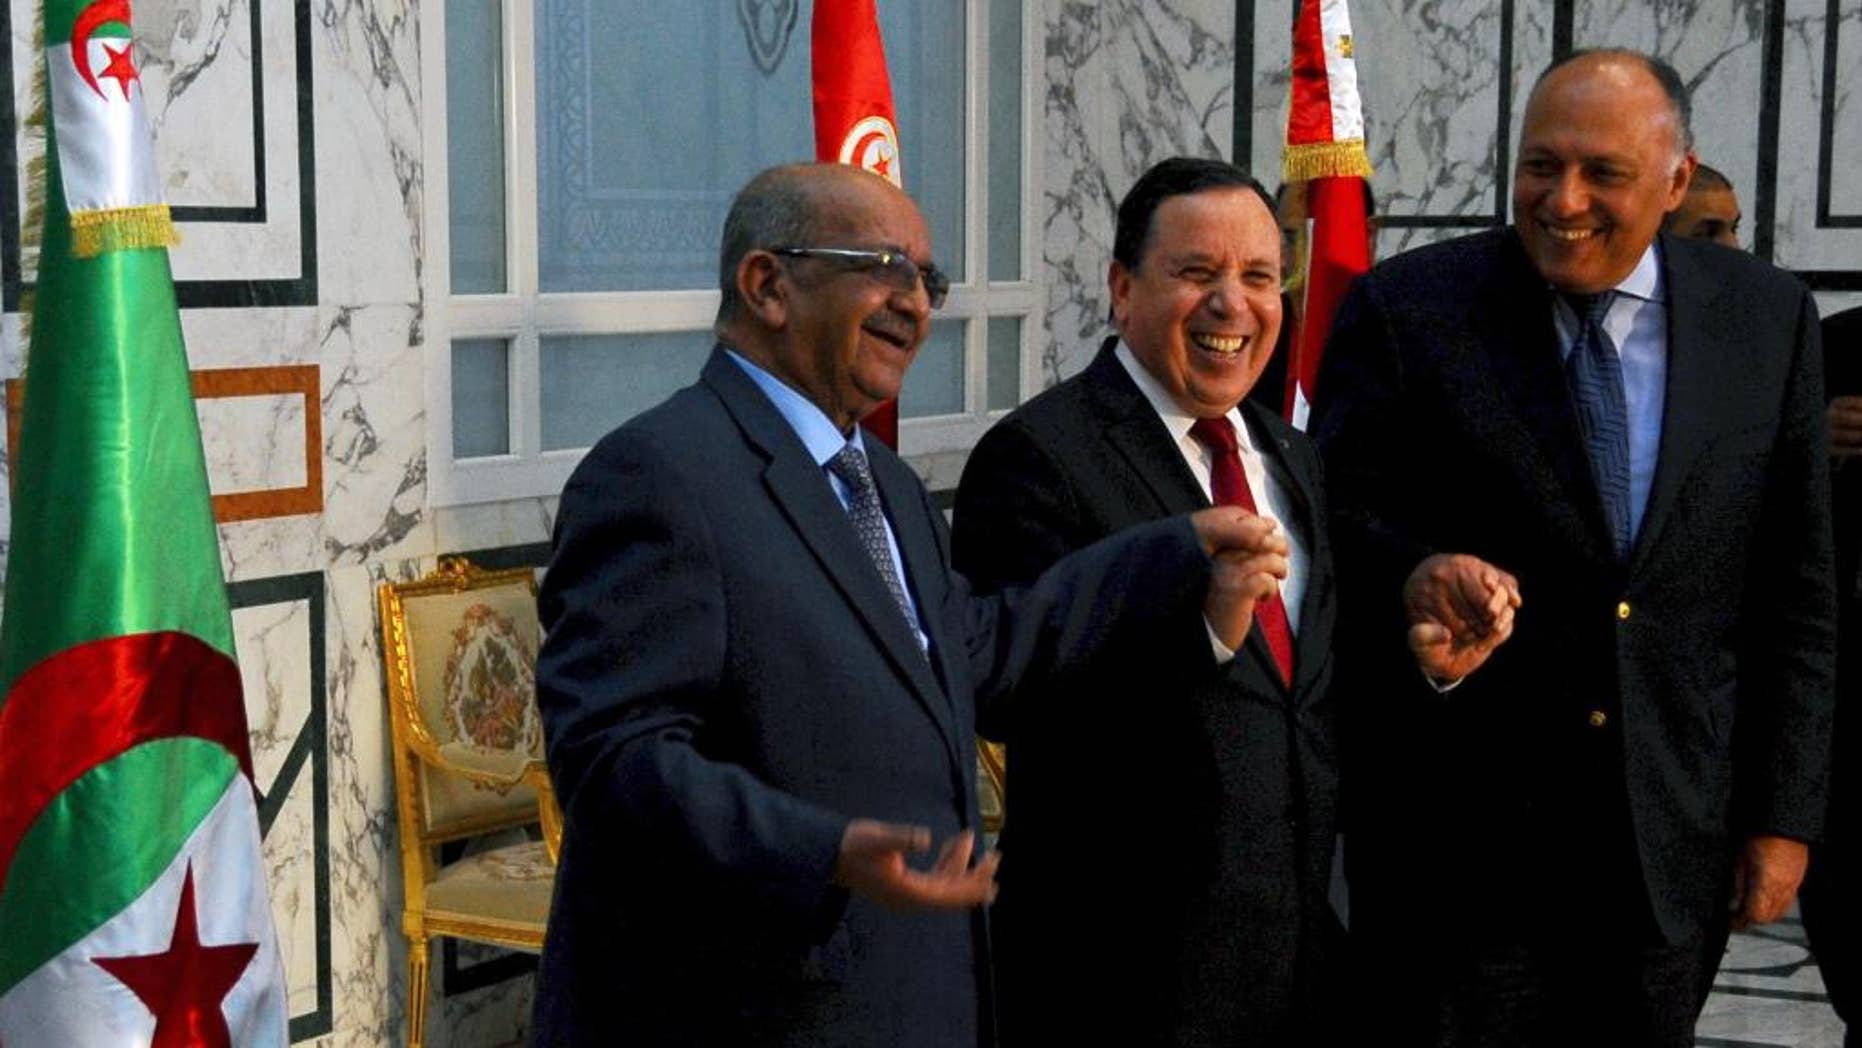 Tunisia Foreign Minister Khemaies Jhinaoui, center, shakes hands with his Egyptian counterpart Sameh Shoukry, right, and Algerian Minister of Maghreb Affairs, African Union and Arab League Abdelkader Messahel, prior to their meeting to discuss efforts to resolve the Libyan conflict in Tunis, Sunday, Feb. 19, 2017. (AP Photo/Hassene Dridi)